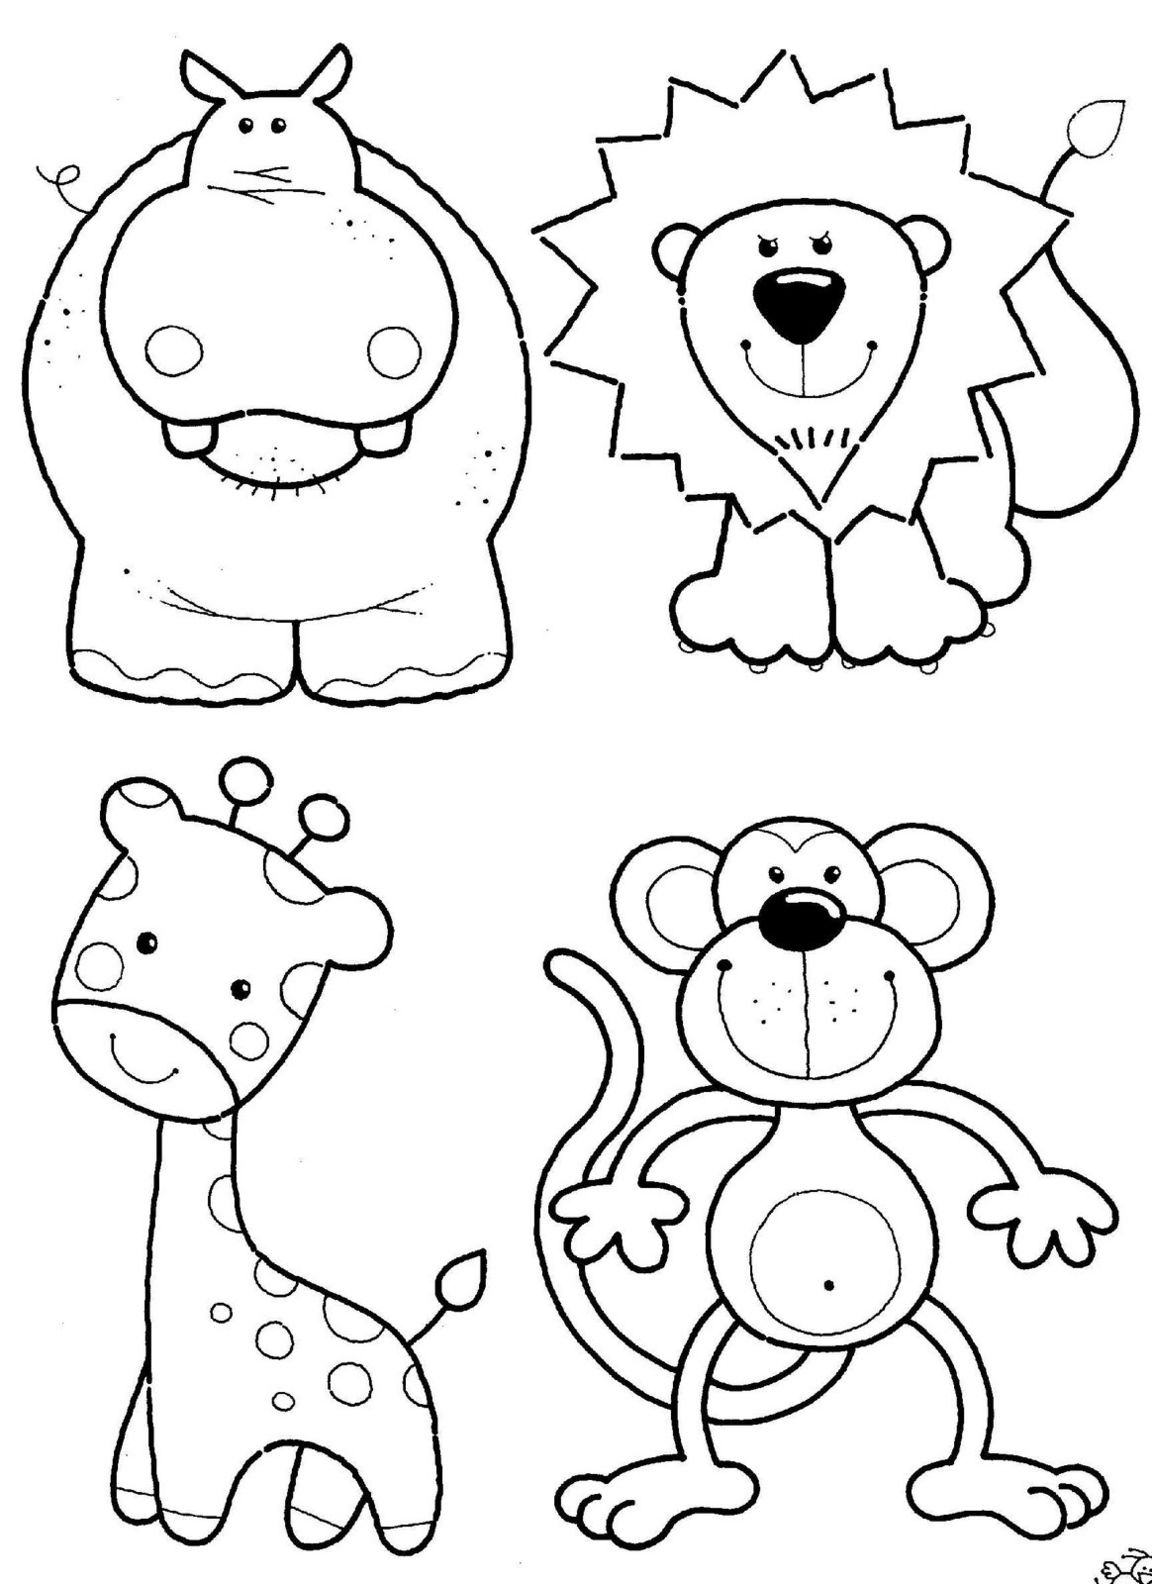 coloring+pages+to+print | animals coloring pages to print animals ...